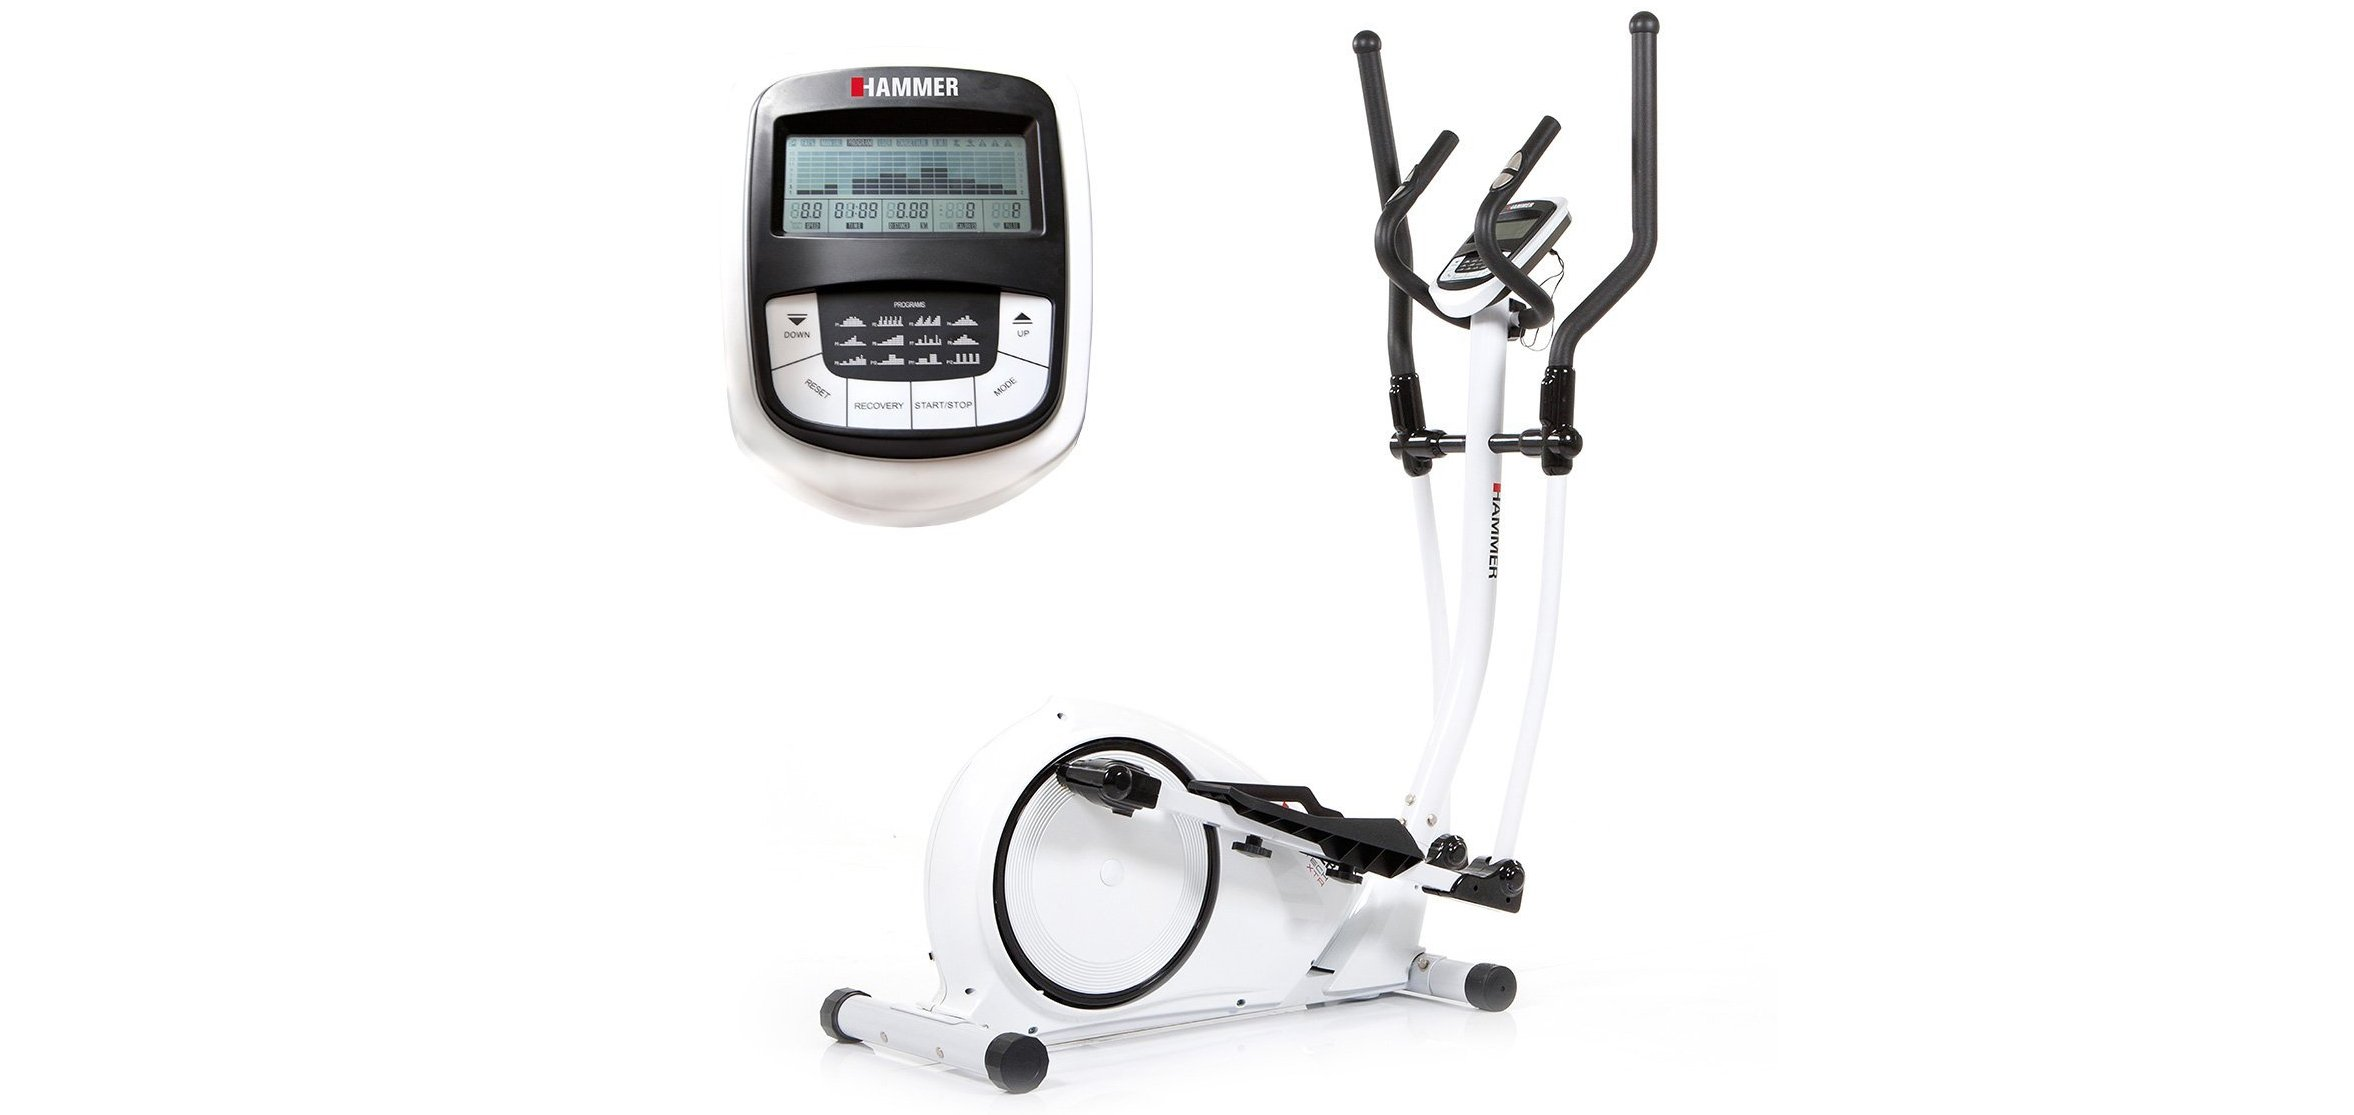 076b582fd Best cross trainers 2019  Get fit with the best elliptical trainers ...